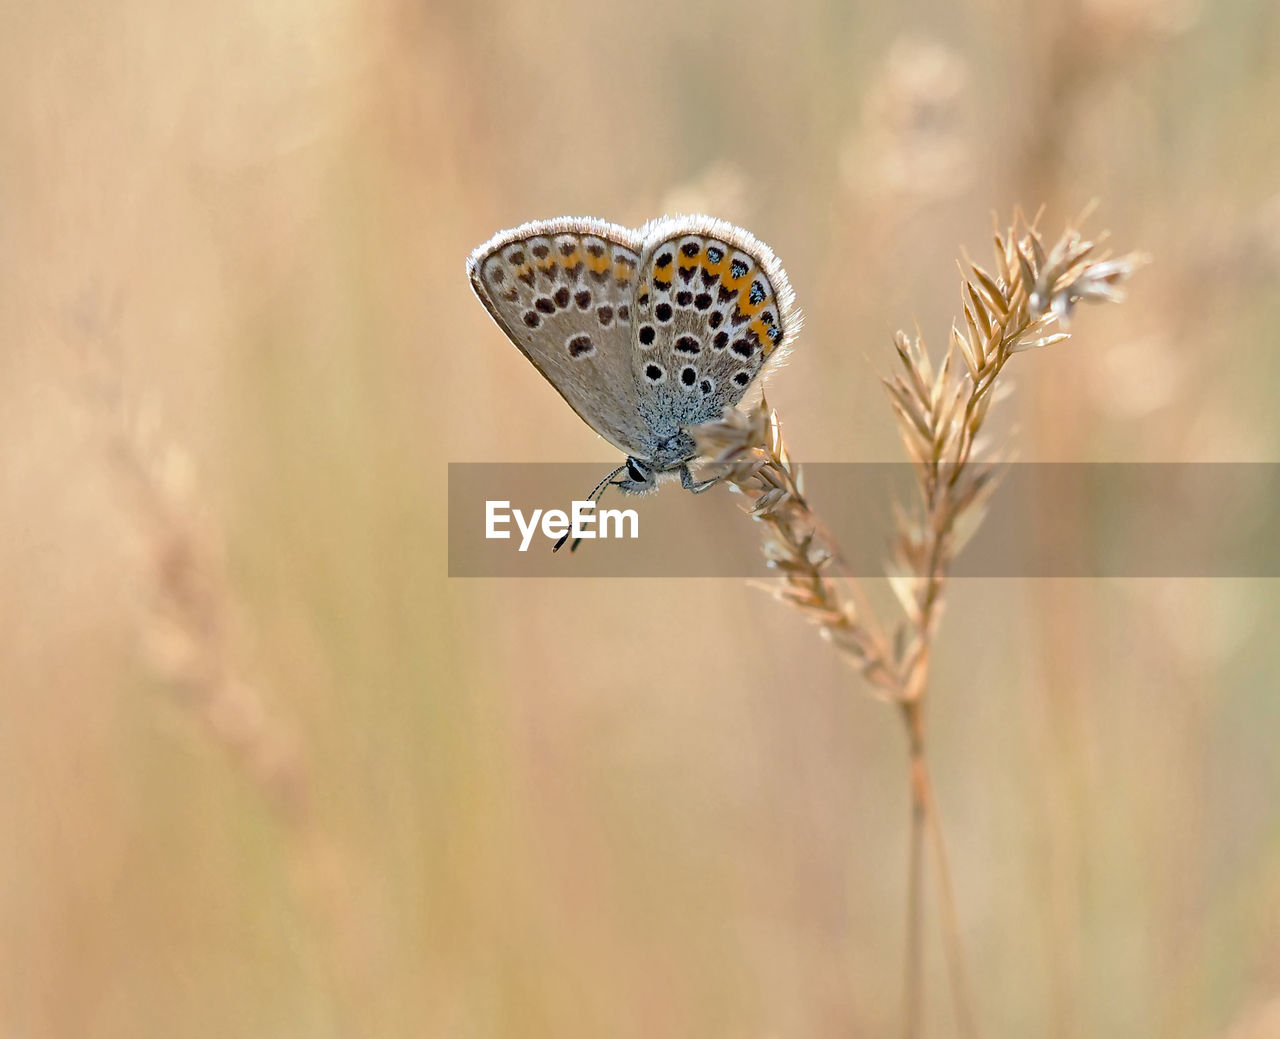 animal, animal themes, animals in the wild, animal wildlife, insect, one animal, invertebrate, close-up, plant, focus on foreground, nature, animal wing, day, beauty in nature, butterfly - insect, no people, selective focus, flower, outdoors, plant stem, butterfly, pollination